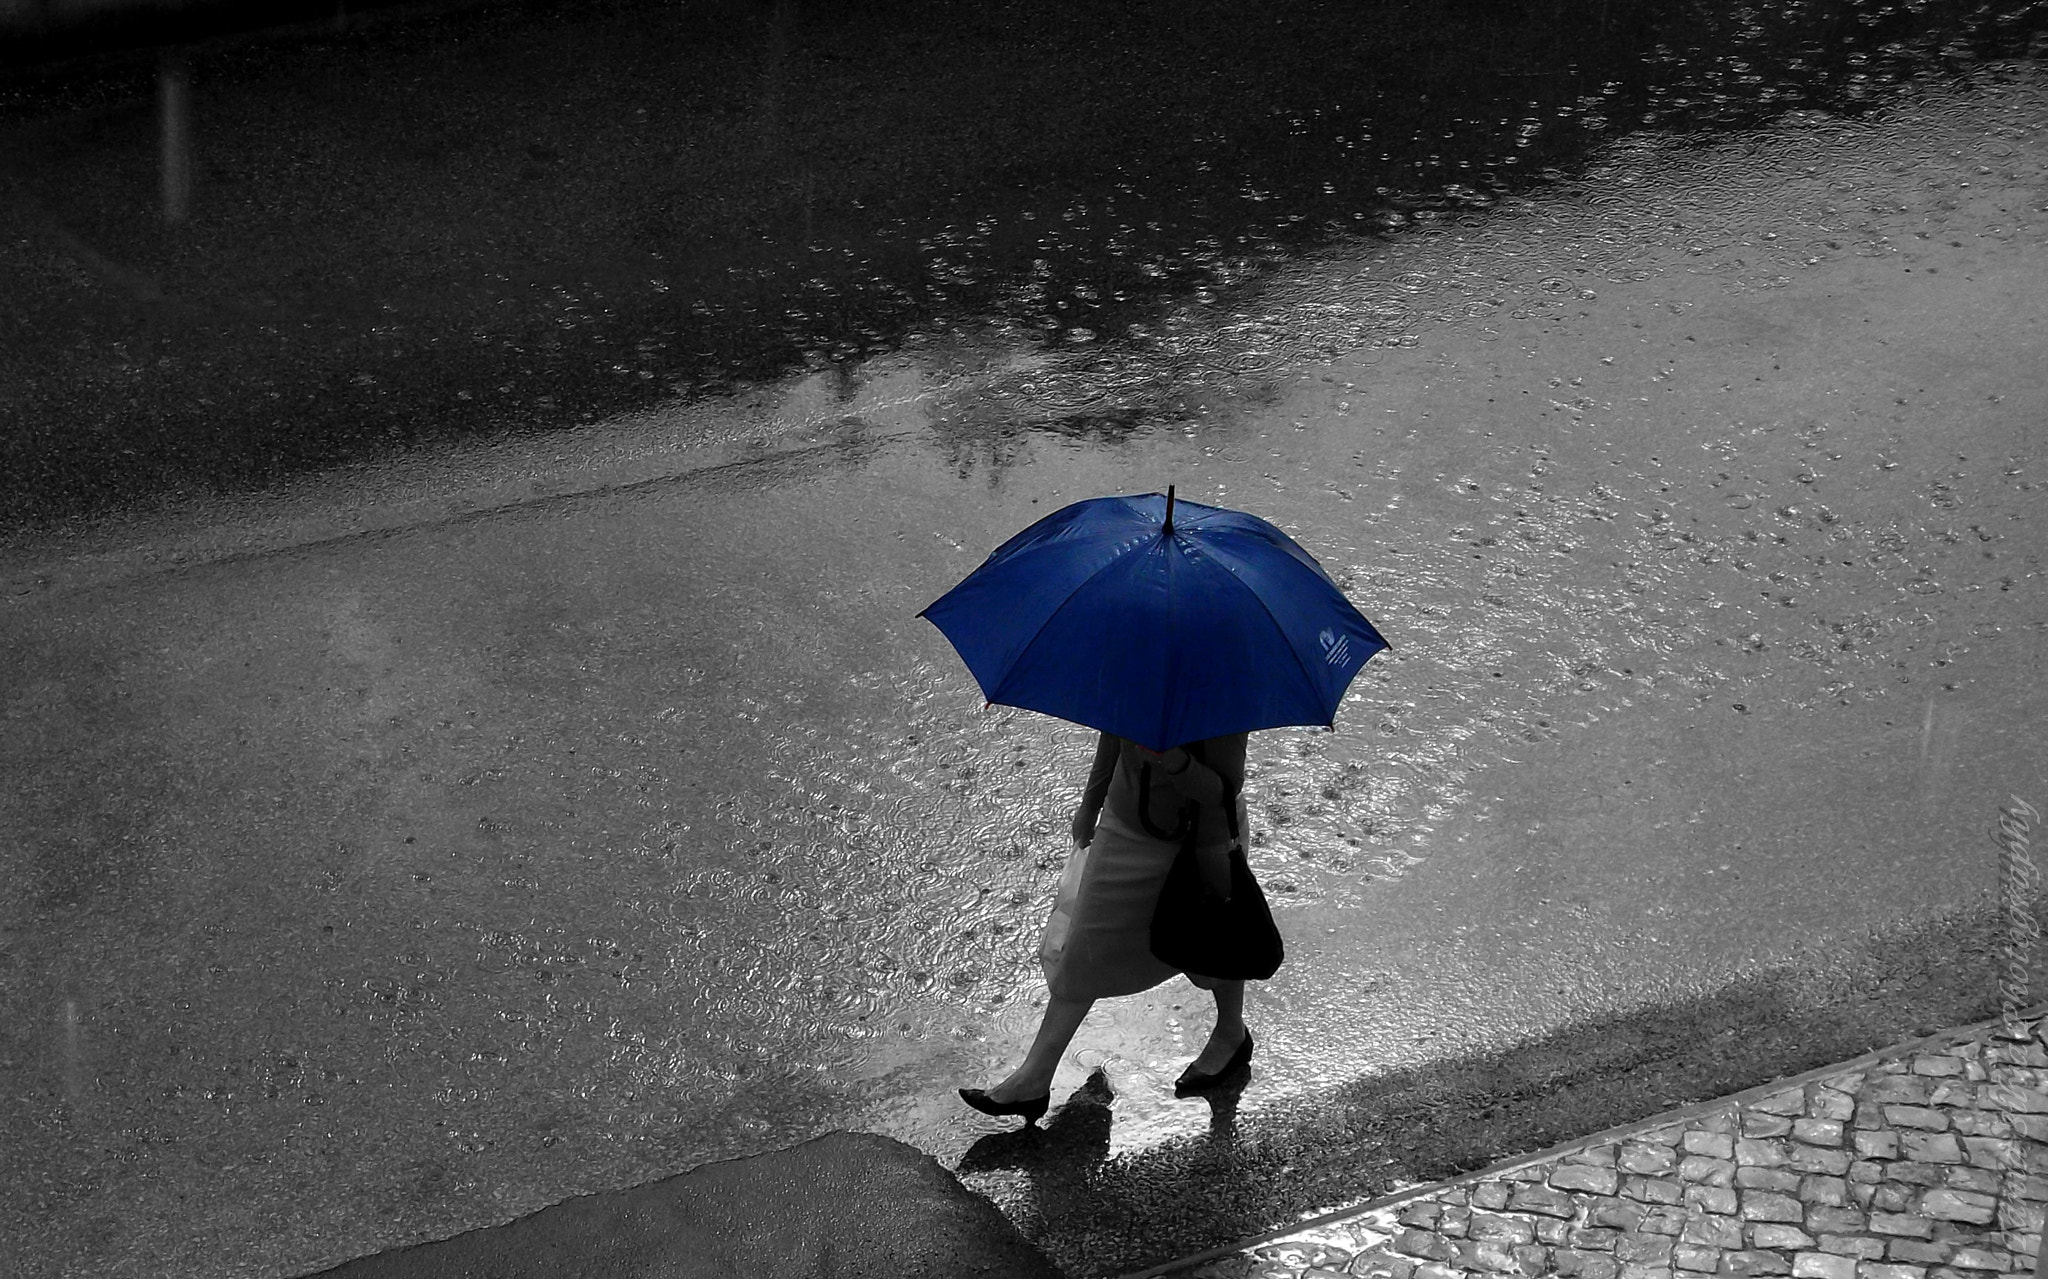 Photograph Rainy Day by Tânia S Silva on 500px